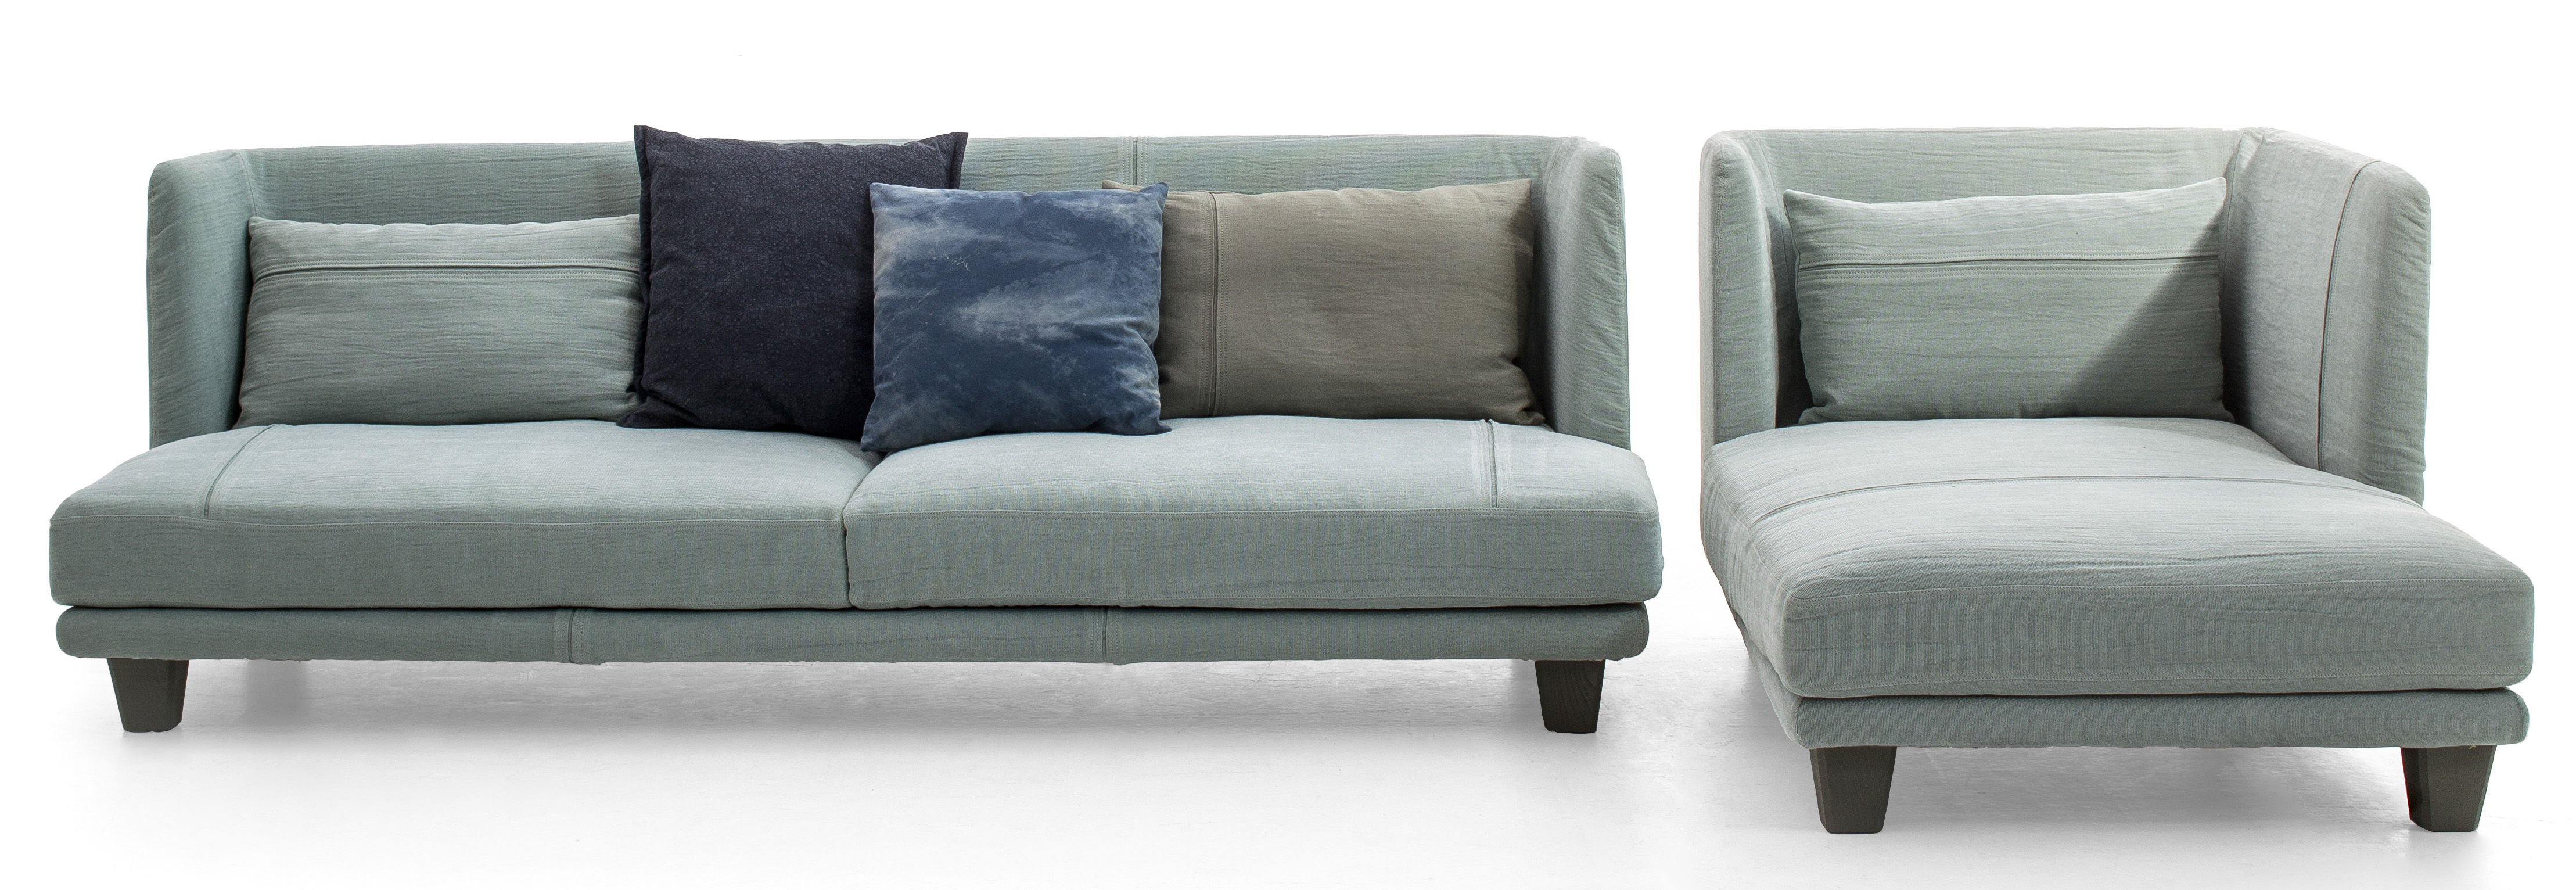 Gimme More Straight sofa L 240 3 seaters Grey light blue by